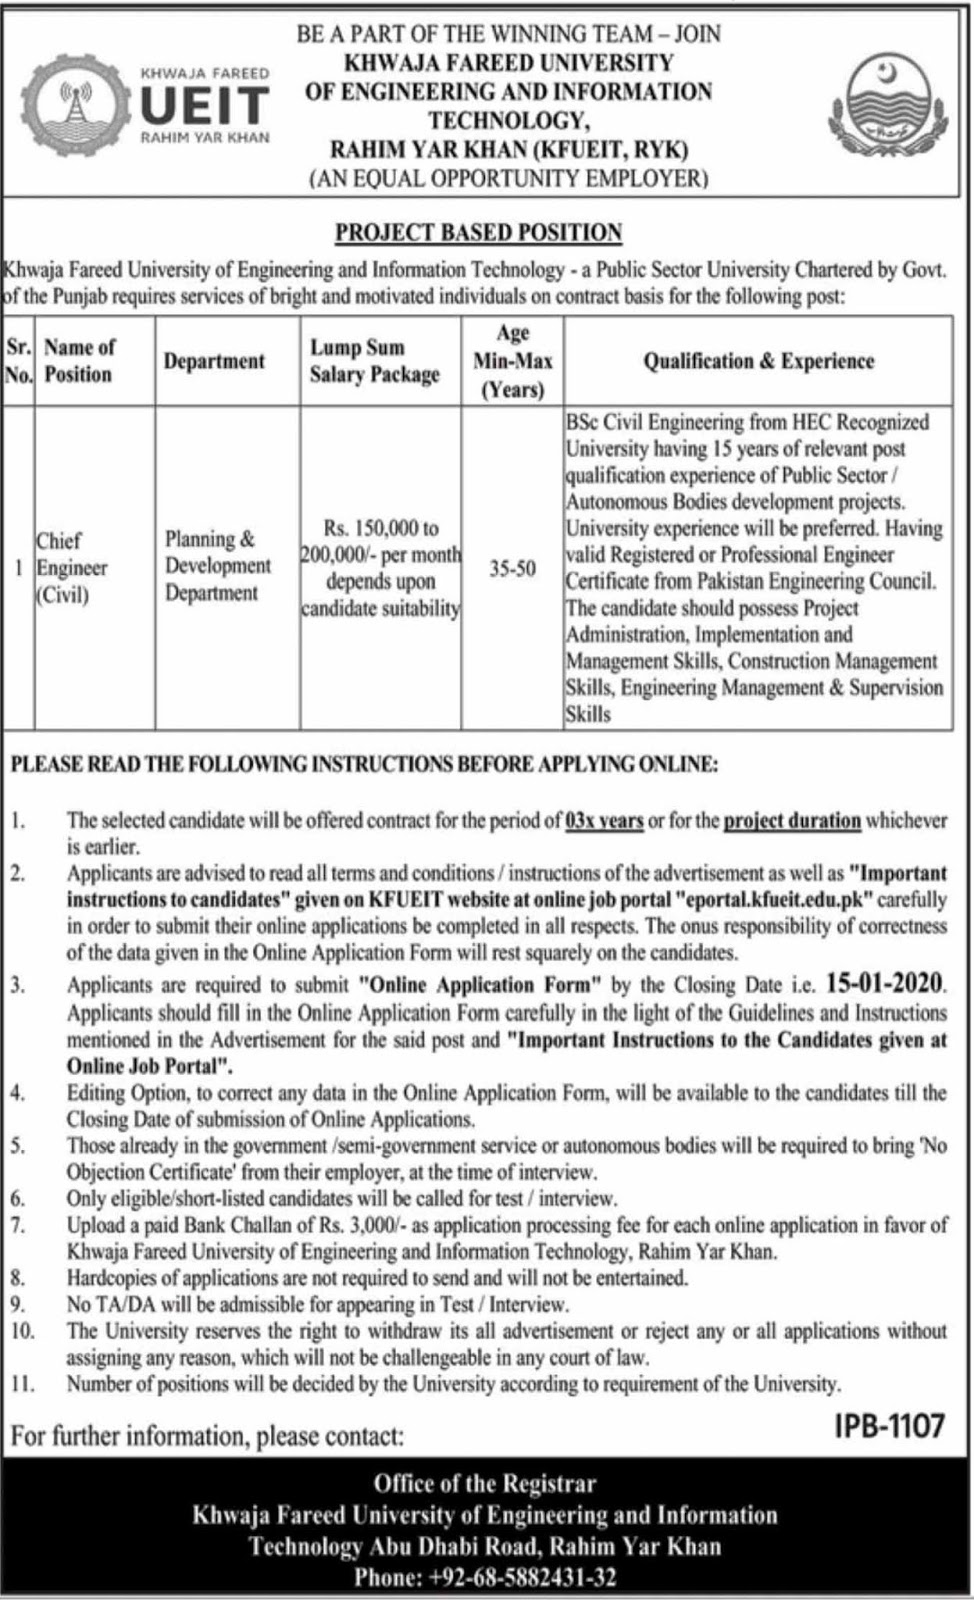 Jobs in Khwaja Fareed University of Engineering & Information Technology